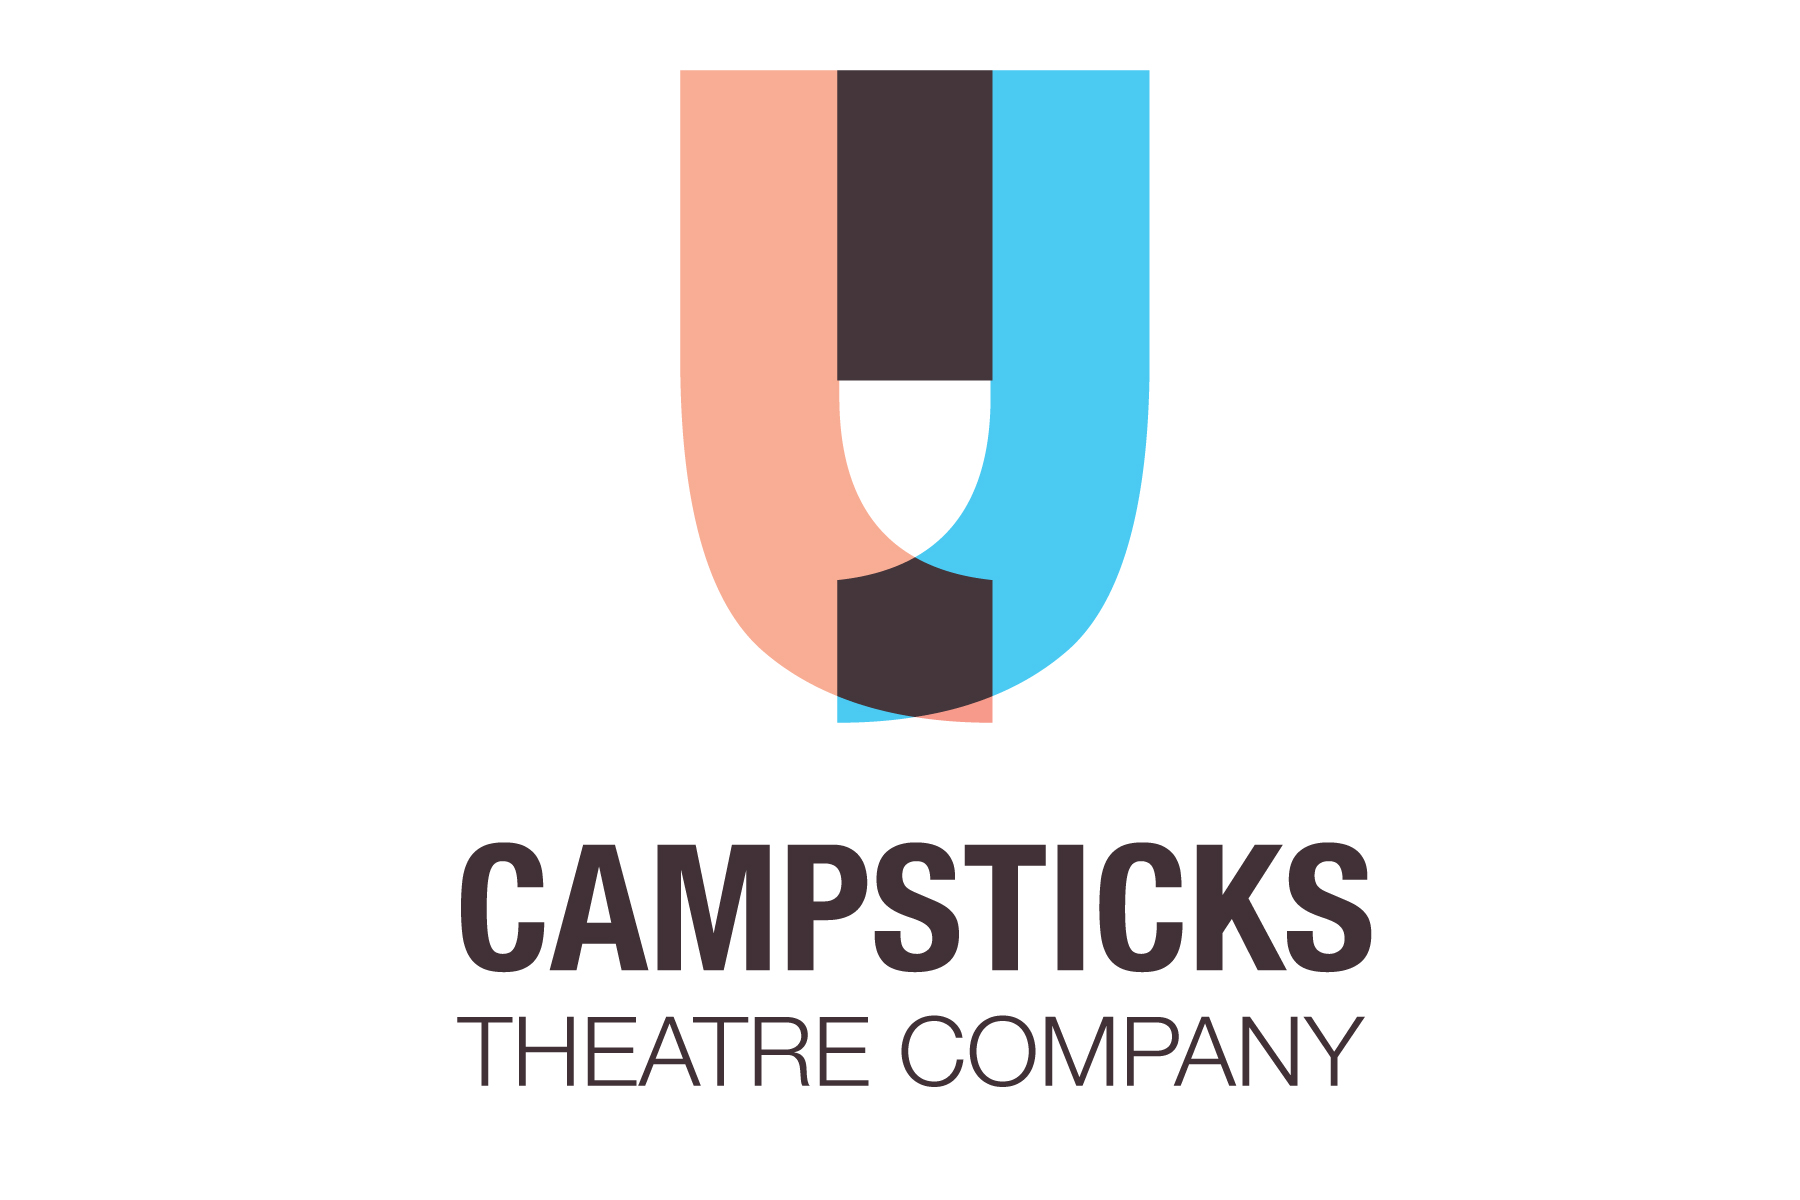 Cover image: Campsticks Theatre Company